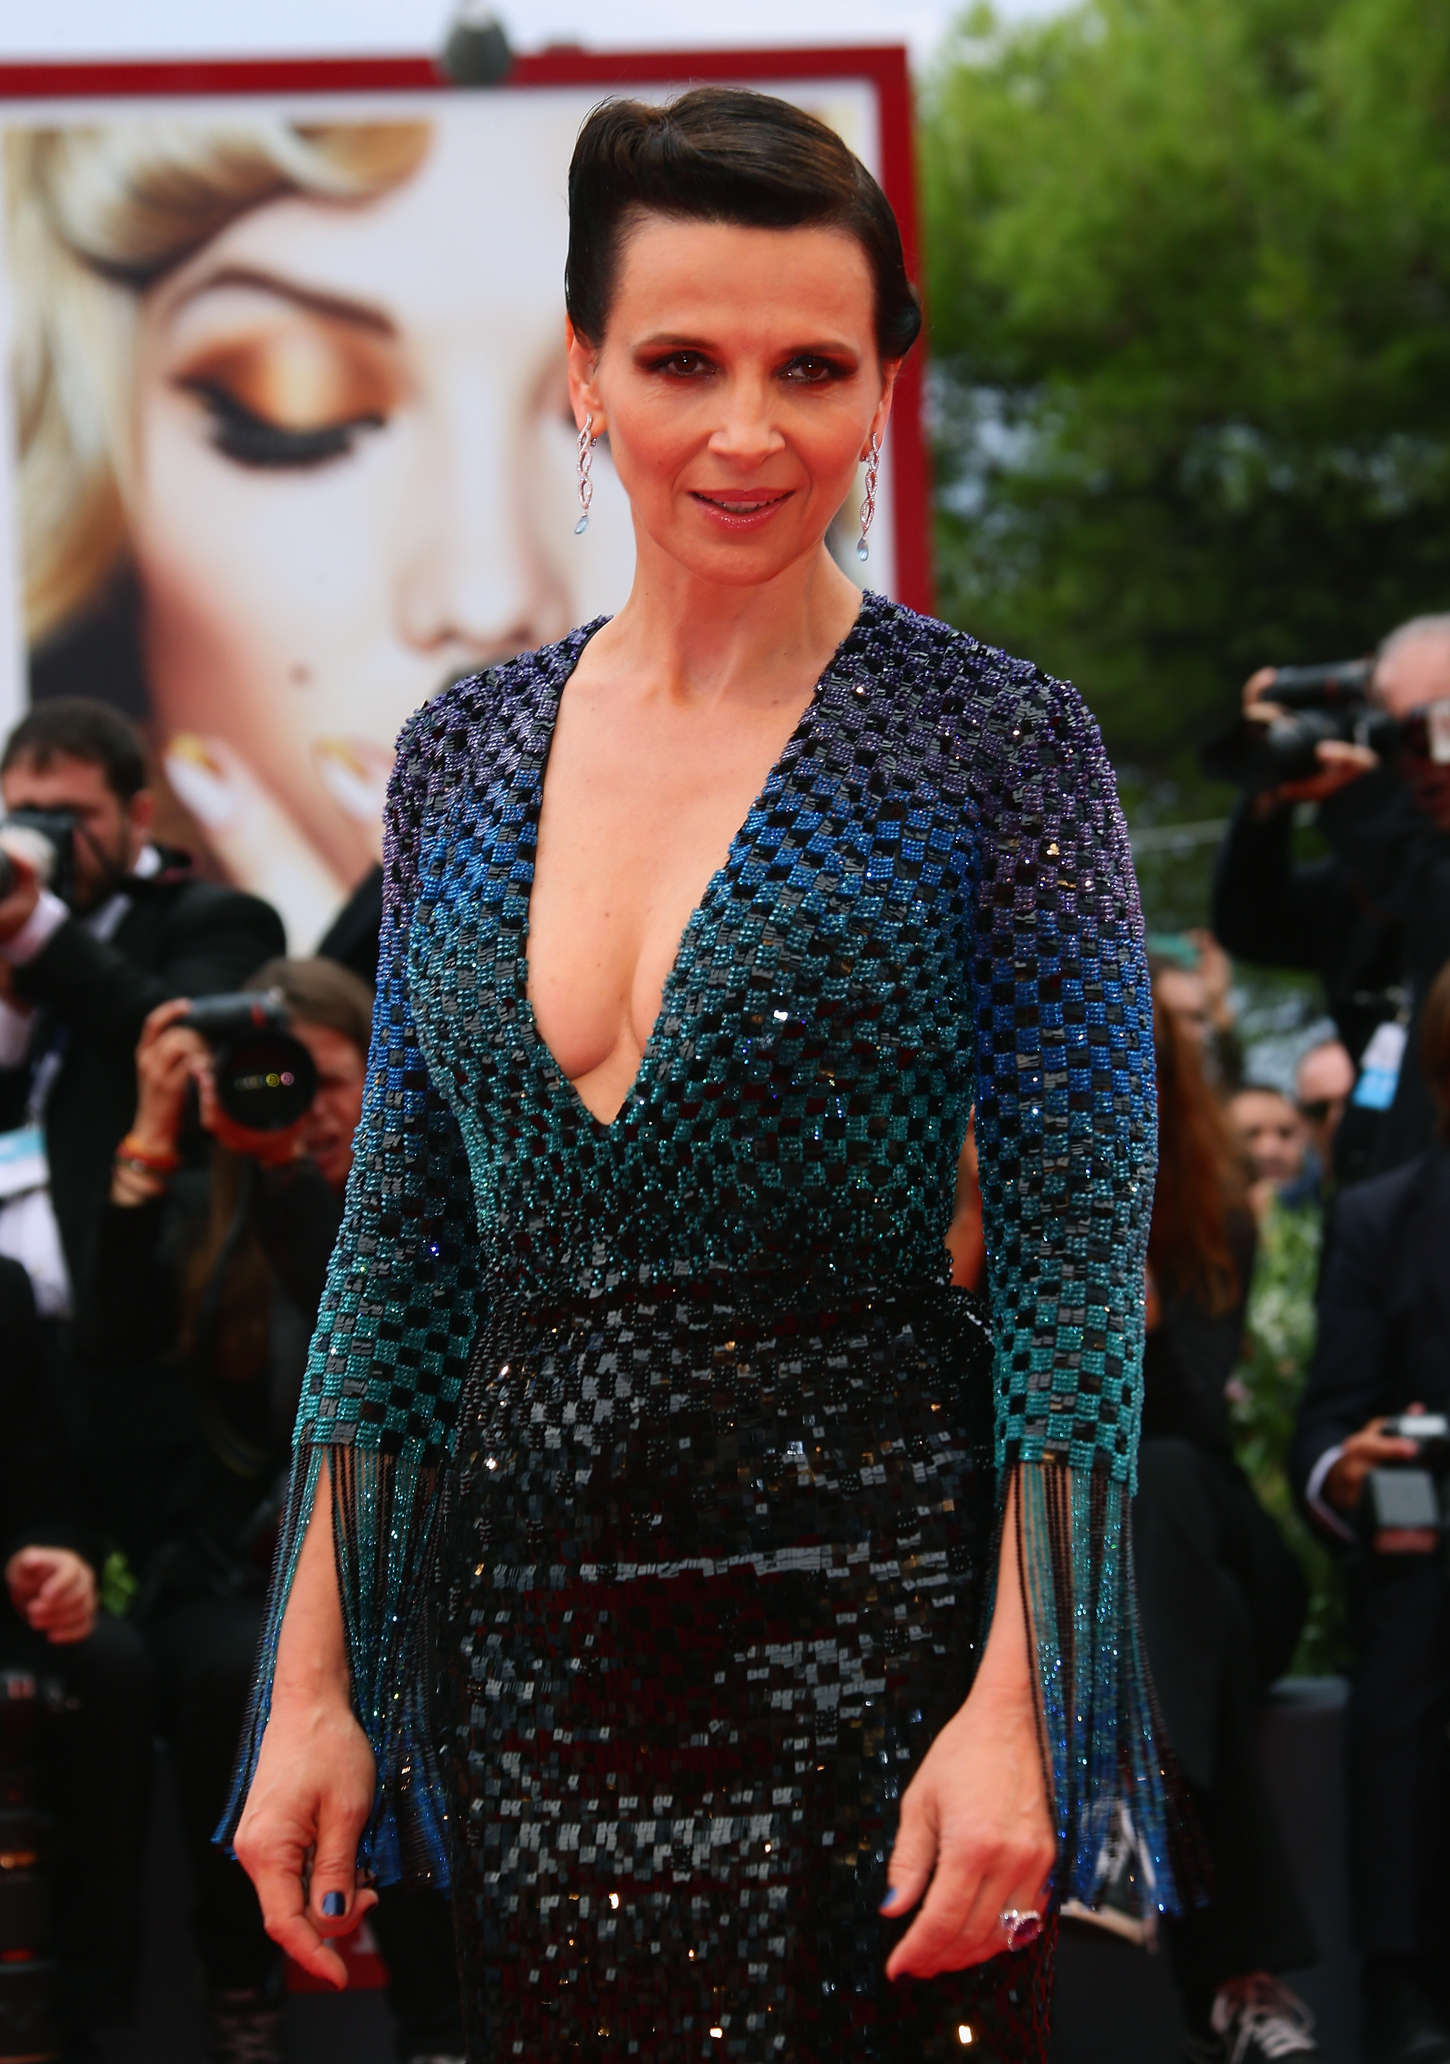 Juliette Binoche The Wait Premiere in Venice